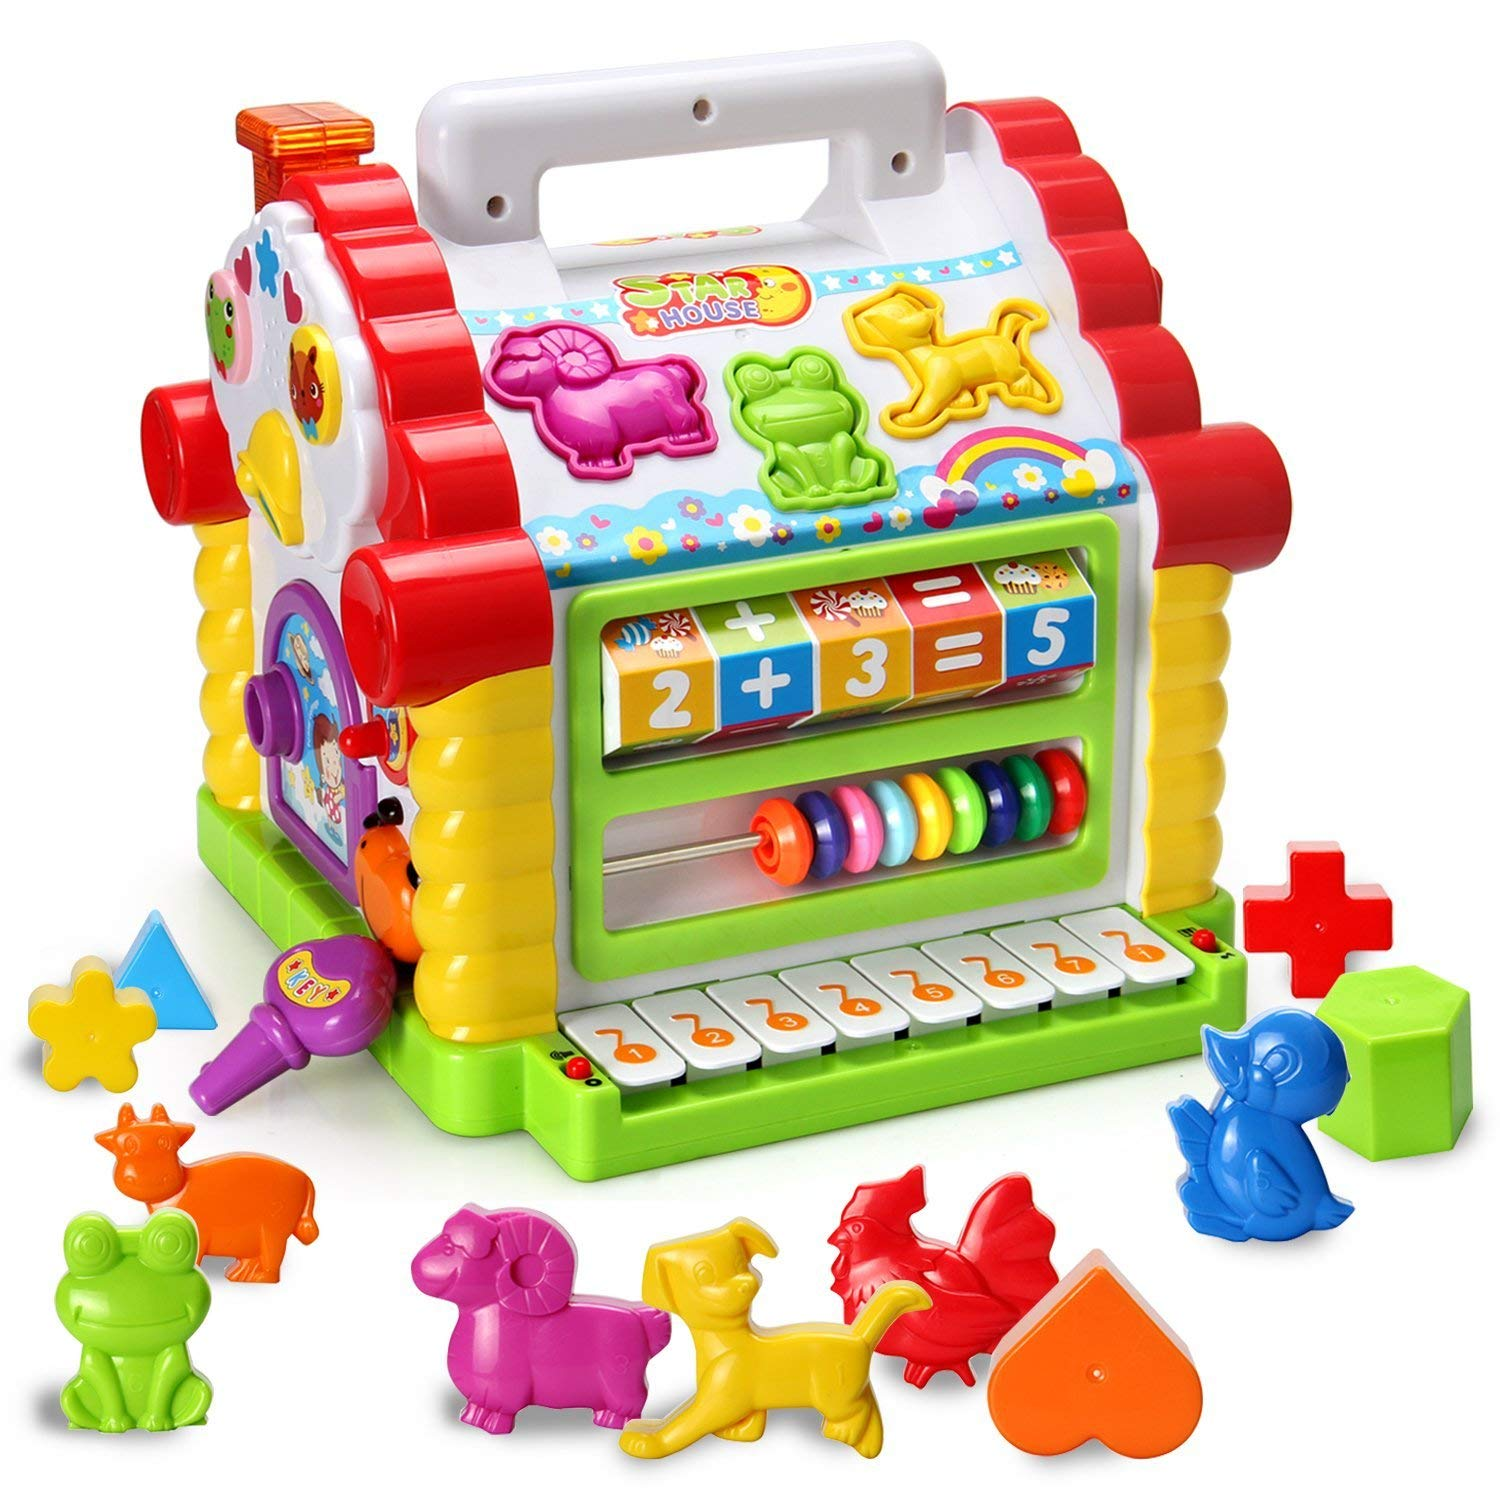 HOMOFY Baby Toys Colorful Musical Baby Little Fun House Lights & Music,Multi Games, Animal Geometric Blocks Learning Educational Toys Girls,Boys,Toddlers Babies